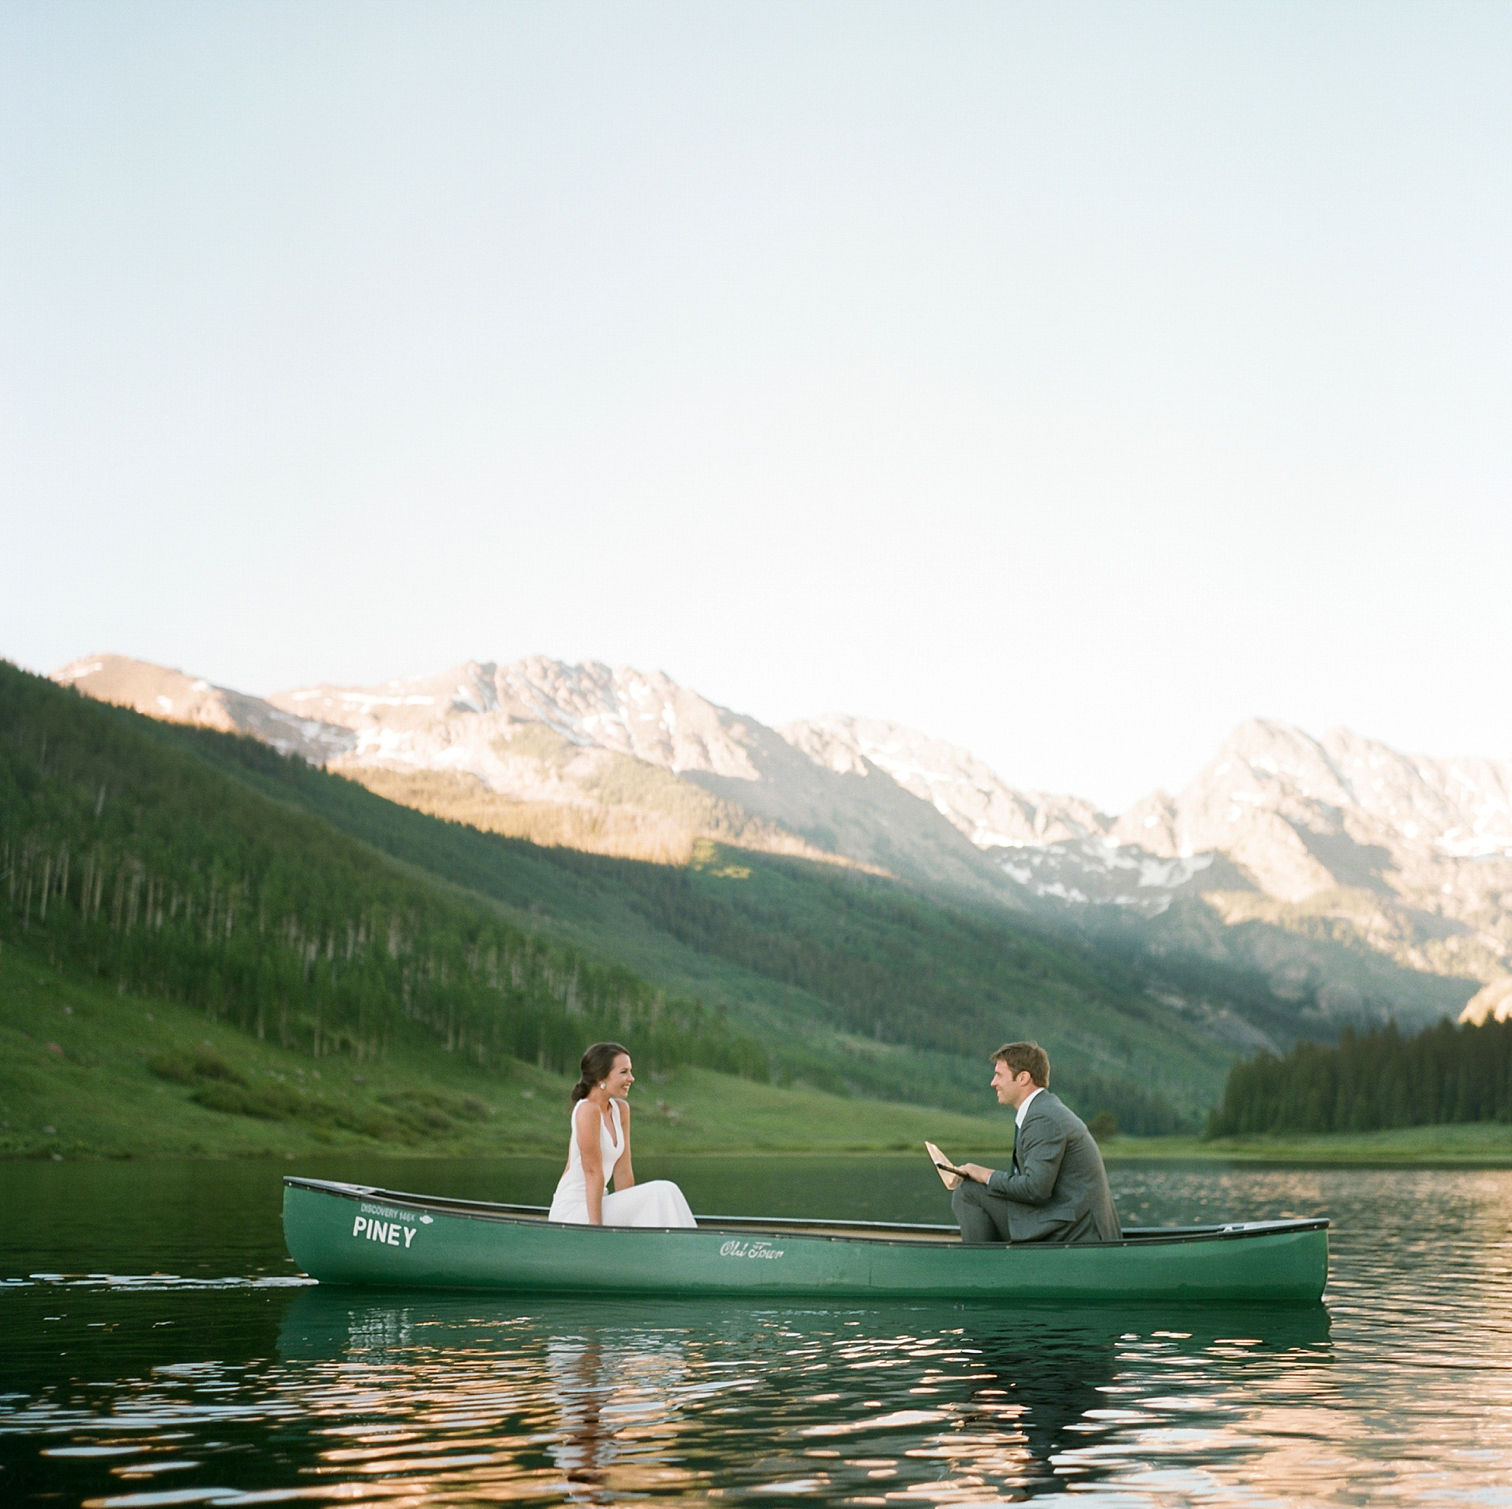 Vail Colorado Wedding, Colorado Wedding Photographer, Film Photographer, Mountain Wedding, Colorado Destination Wedding Photographers, Best Photographers In Colorado, Film Photography, Denver Wedding Photographers, Bride And Groom In A Canoe, Piney River Ranch Wedding